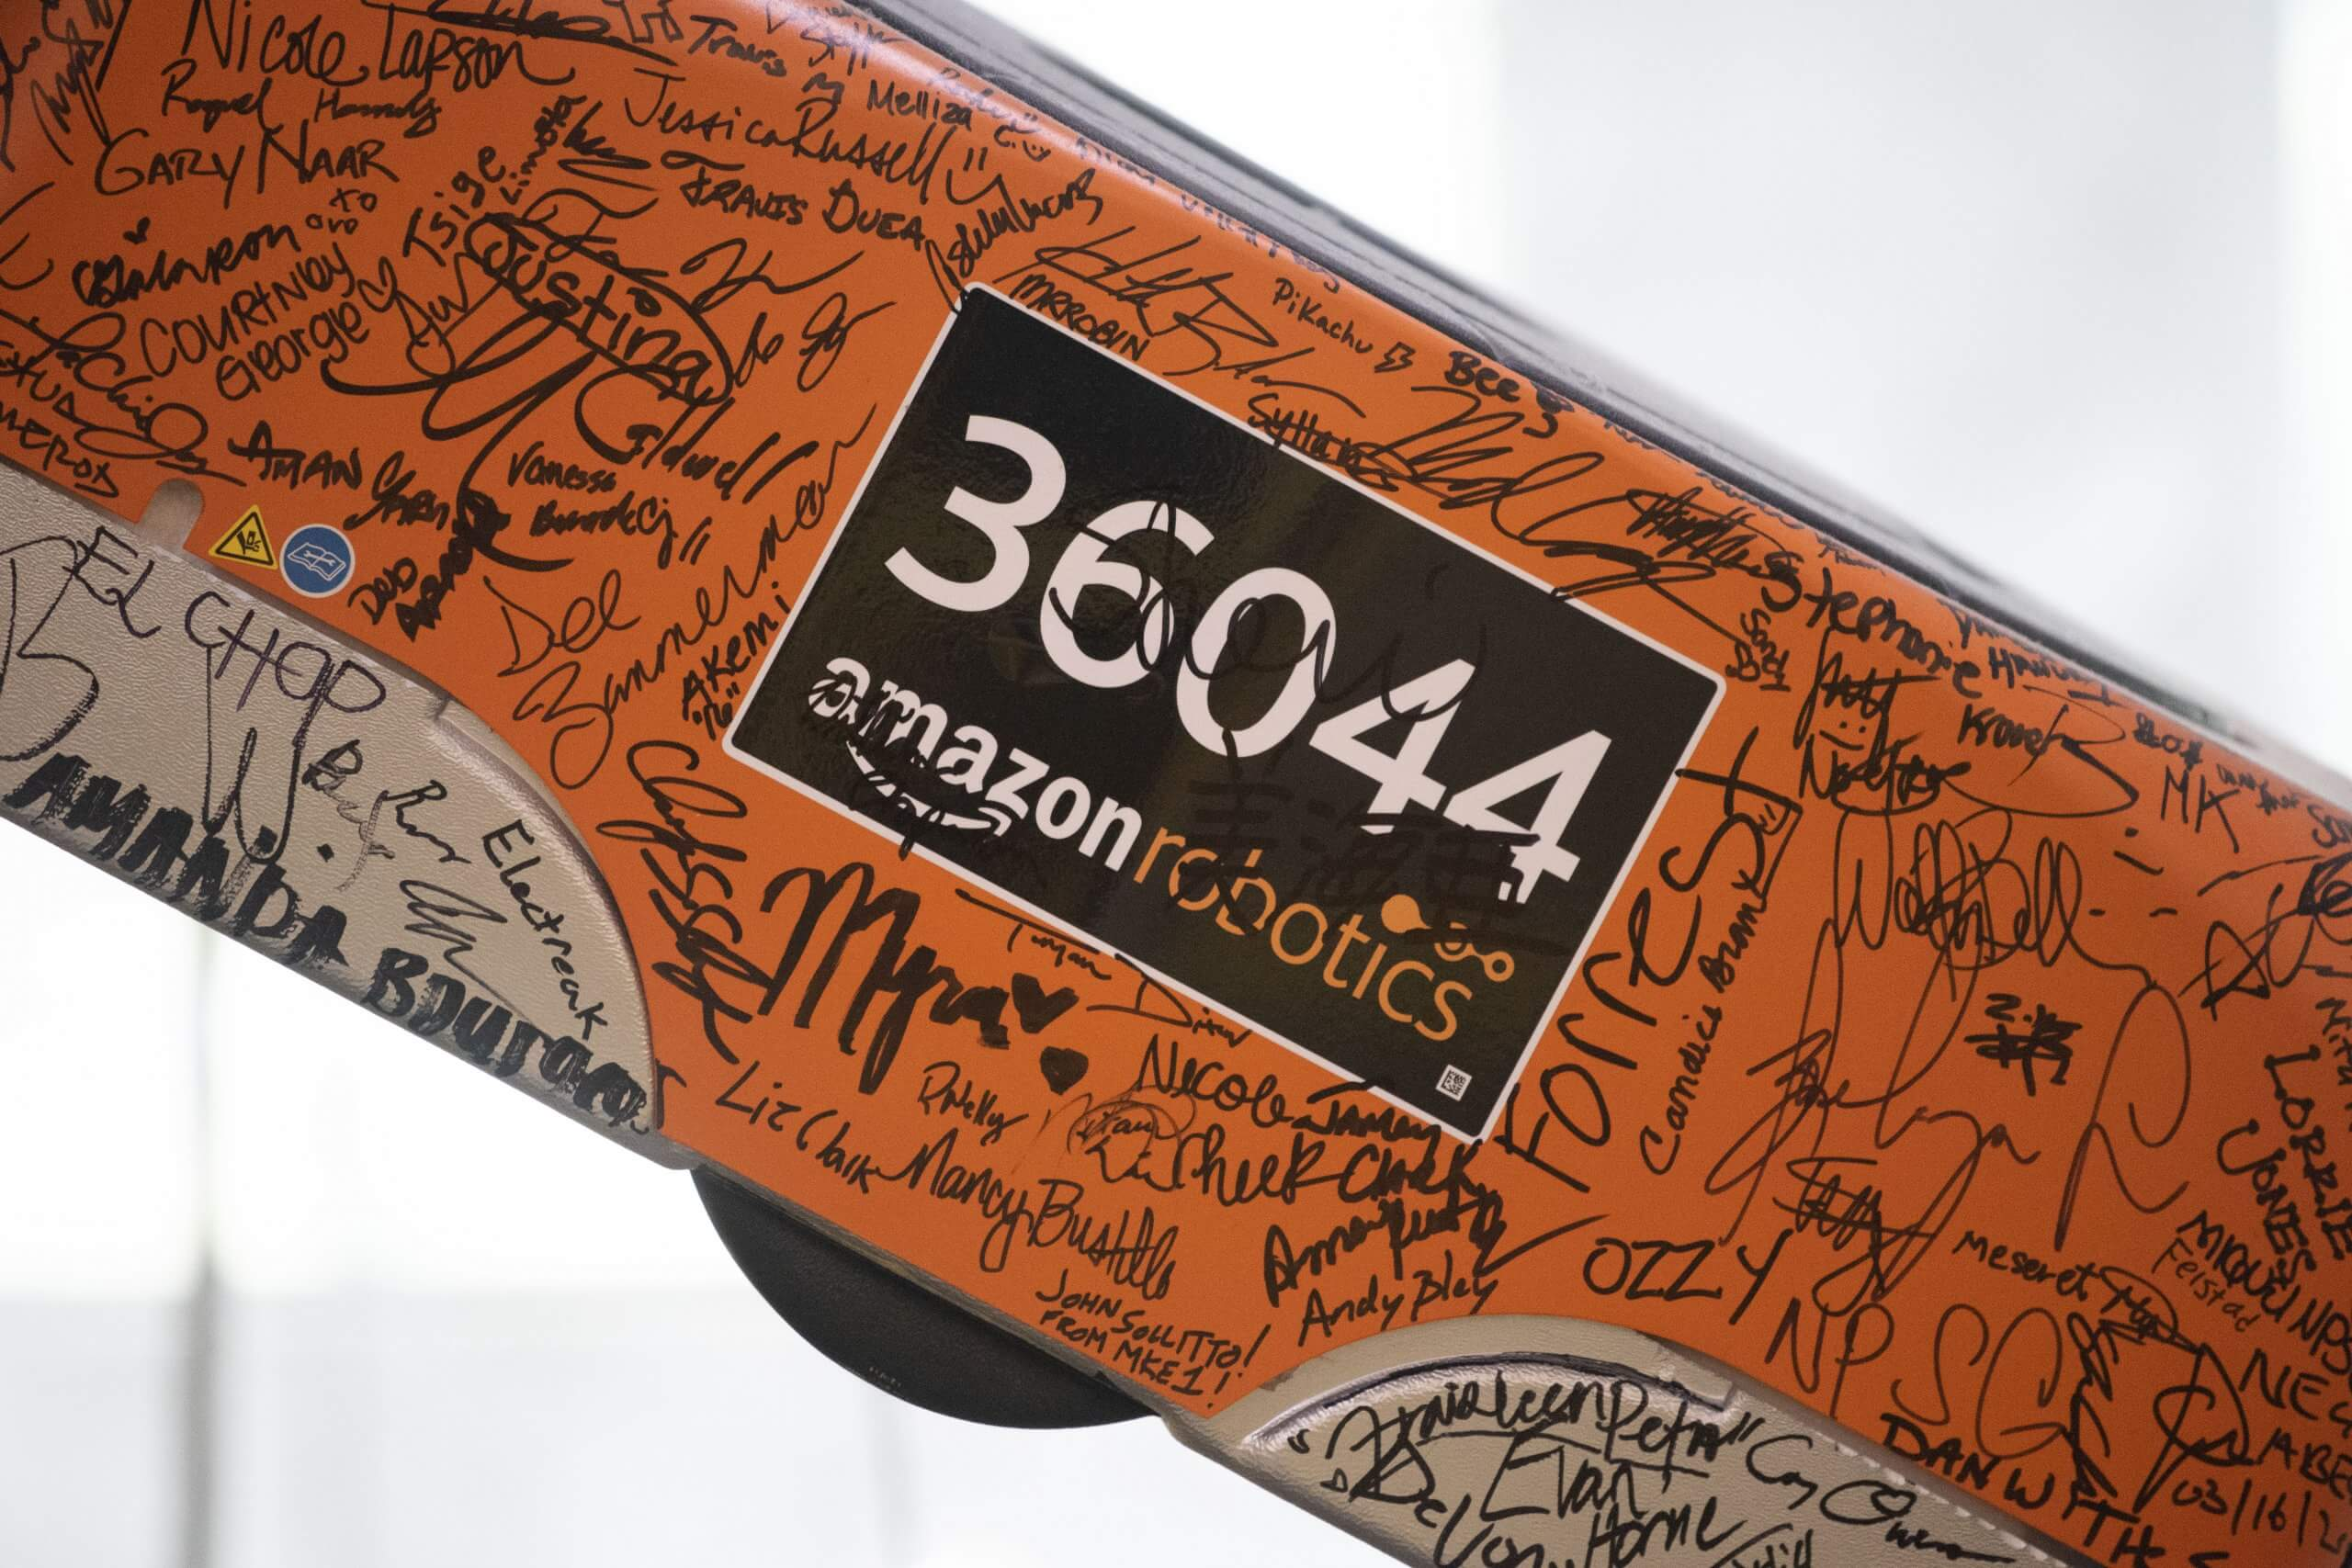 Amazon Robotics works, signed by the entire staff on the opening day of the Kent, Washington Fulfillment Center in March of 2016, hangs over the entrance during a tour September 21, 2018 in Kent, Washington.